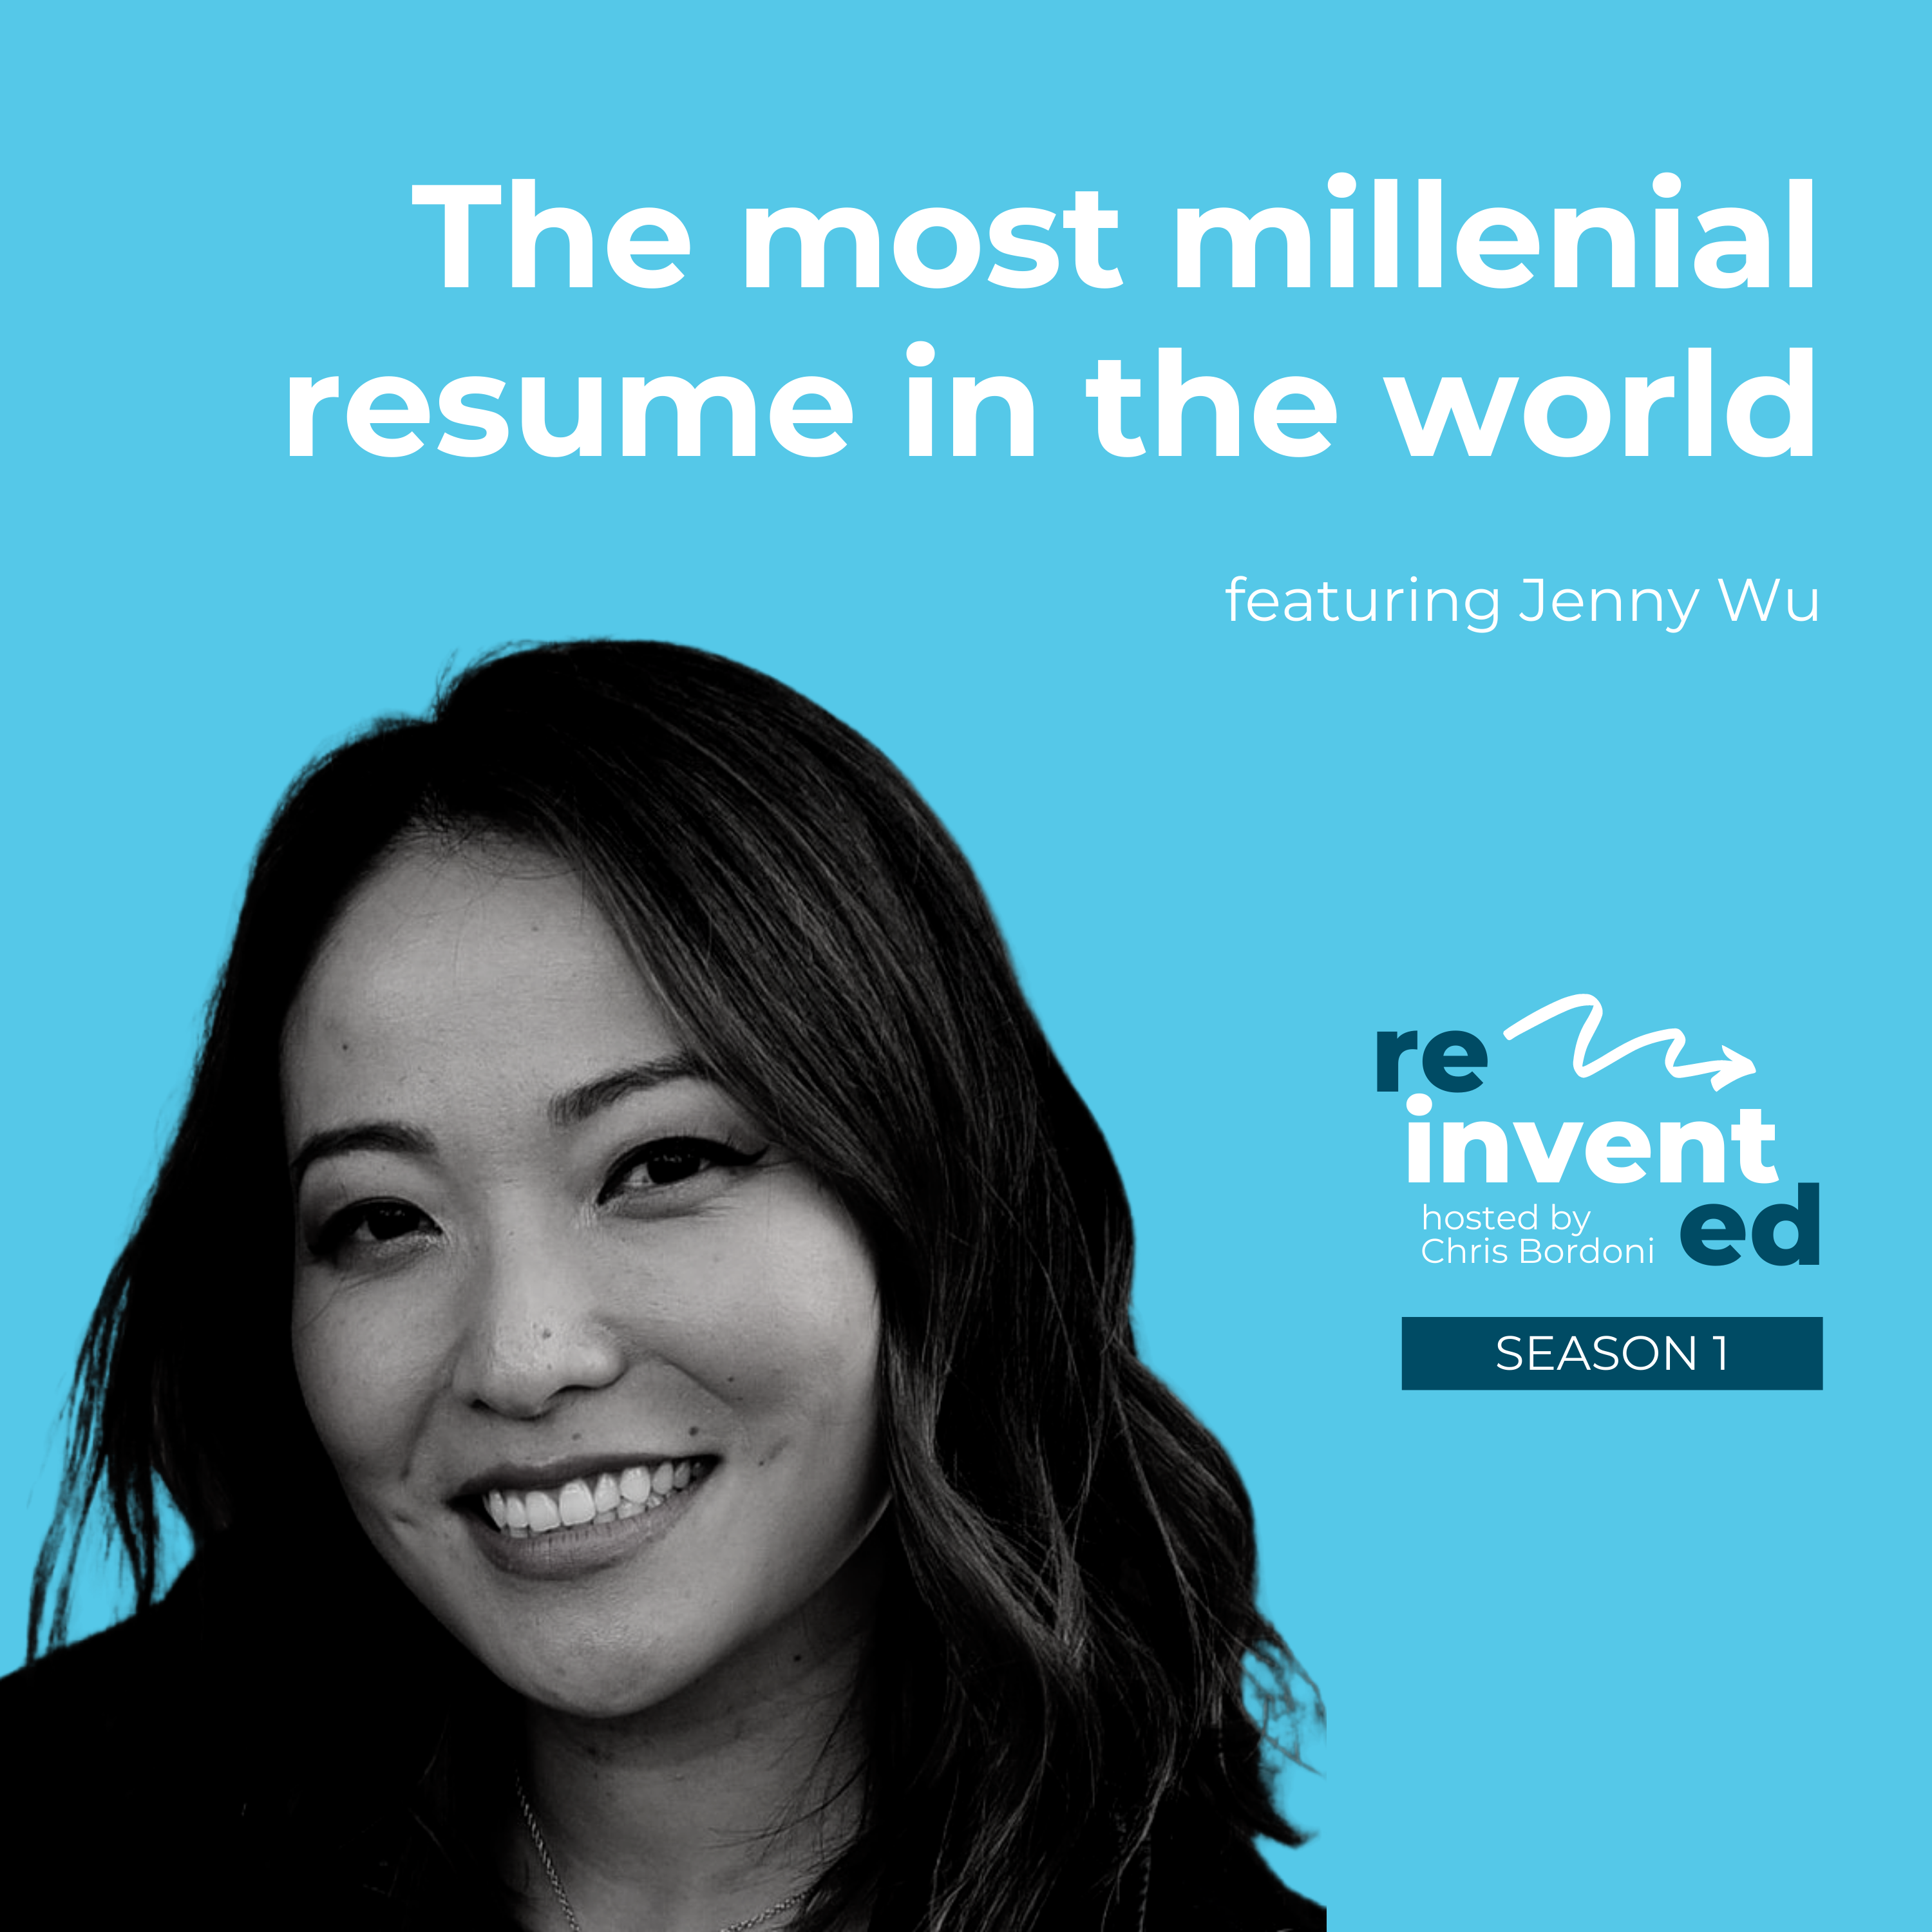 Reinvented   Season 1   Jenny Wu   The most millennial resume in the world